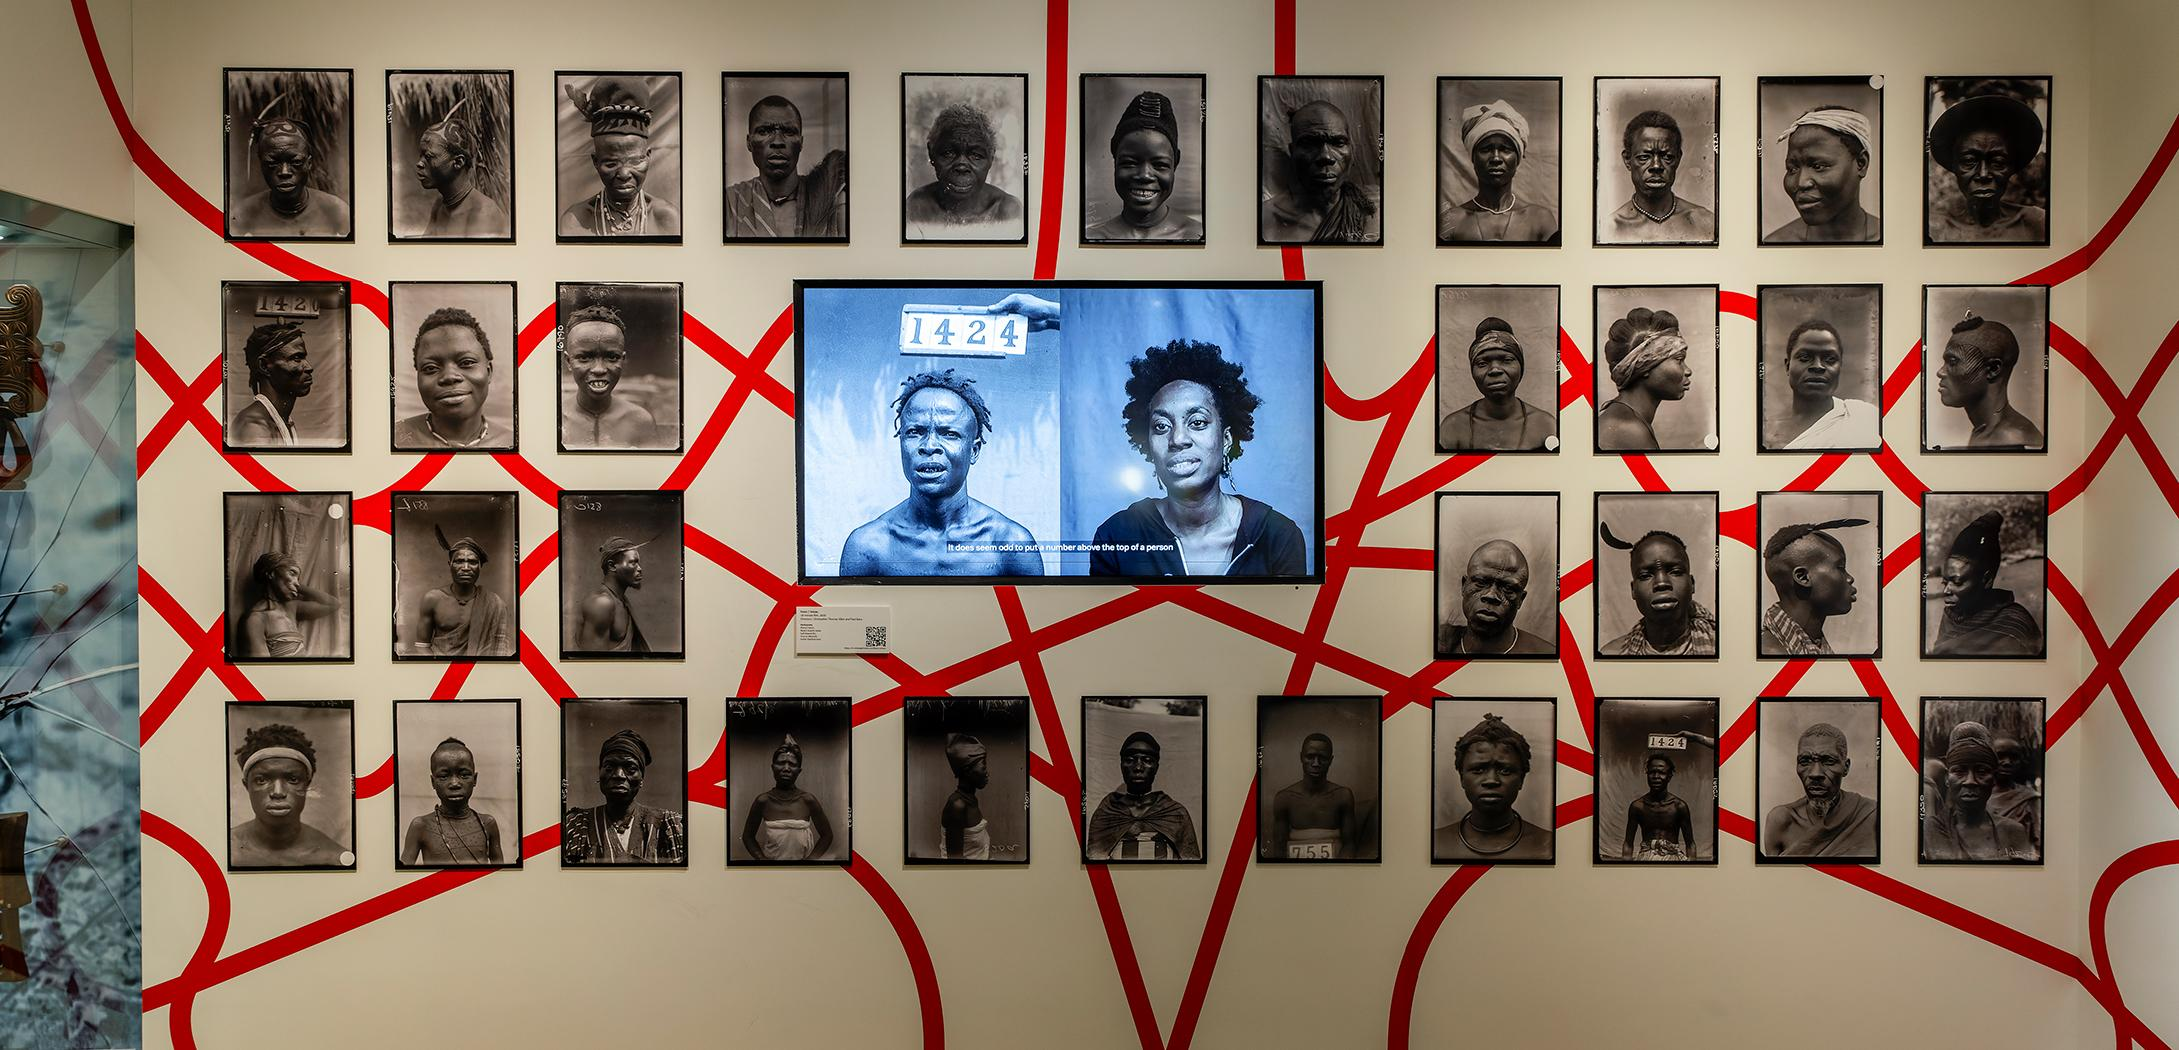 An installation image of the ReEntanglements exhibition, showing a video screen surrounded by black and white photographs of people from Northcote Thomas's expedition. The background shows a red line weaving through the space, inspired by string games.